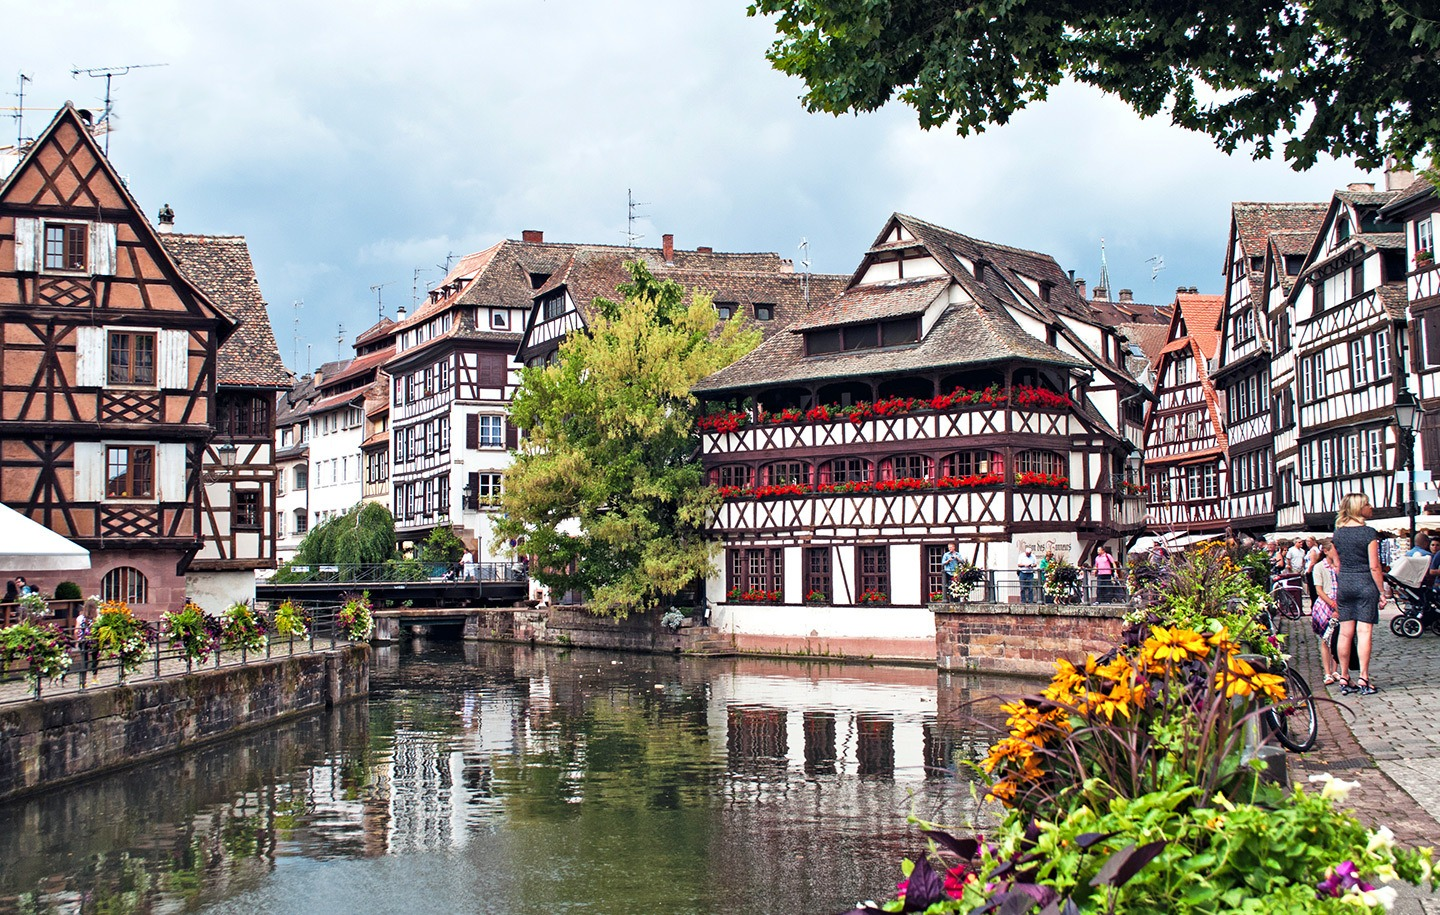 Beautiful Petite France on Strasbourg's canals